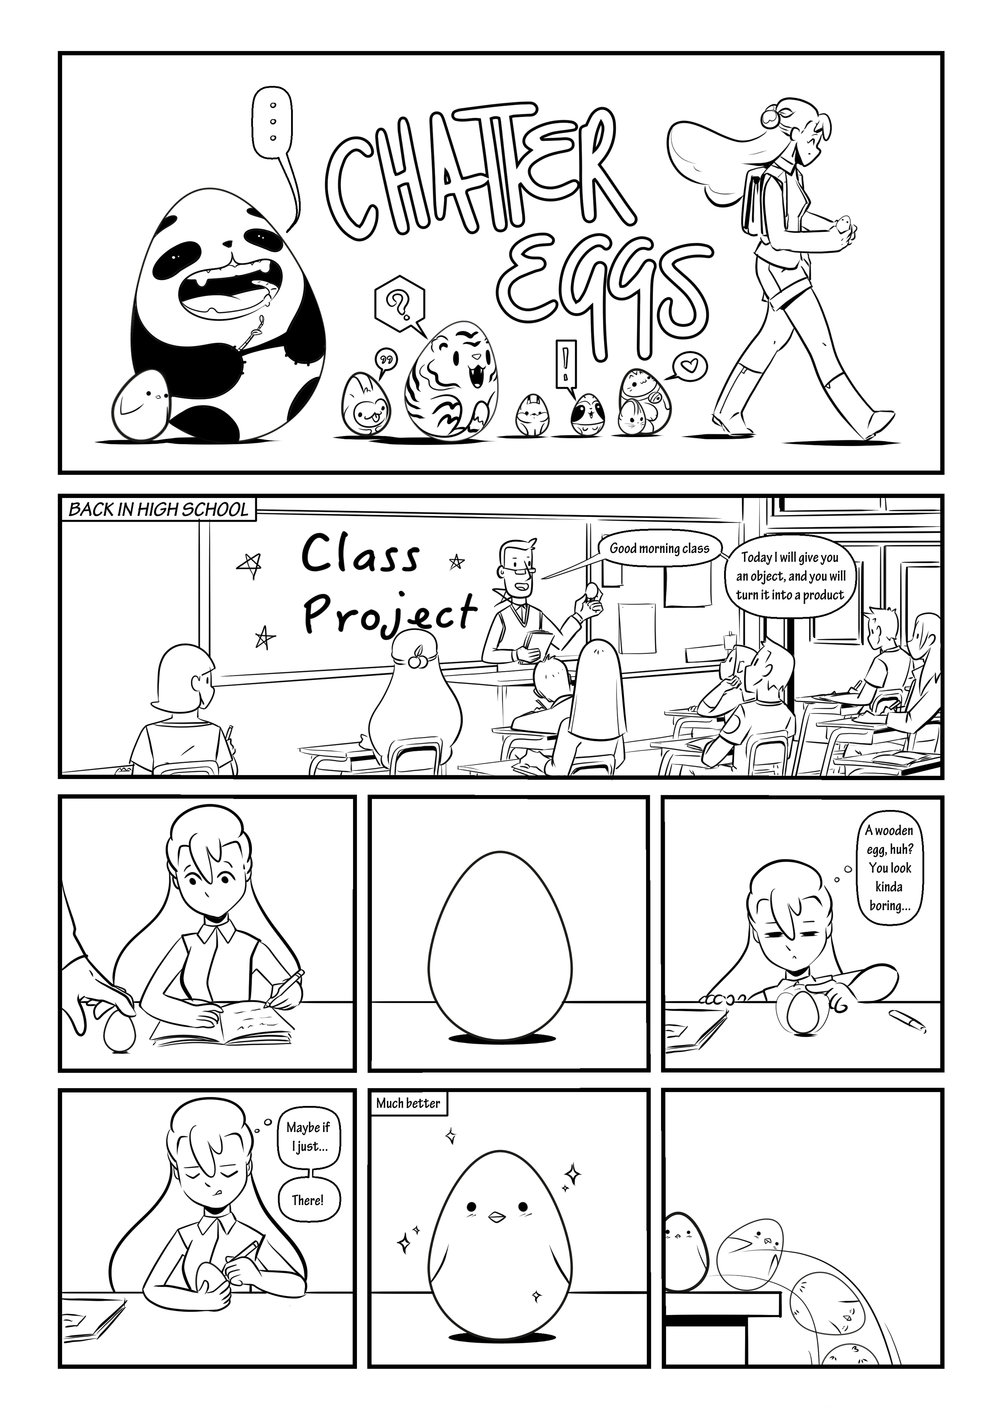 Chatter Eggs by Jo Ley